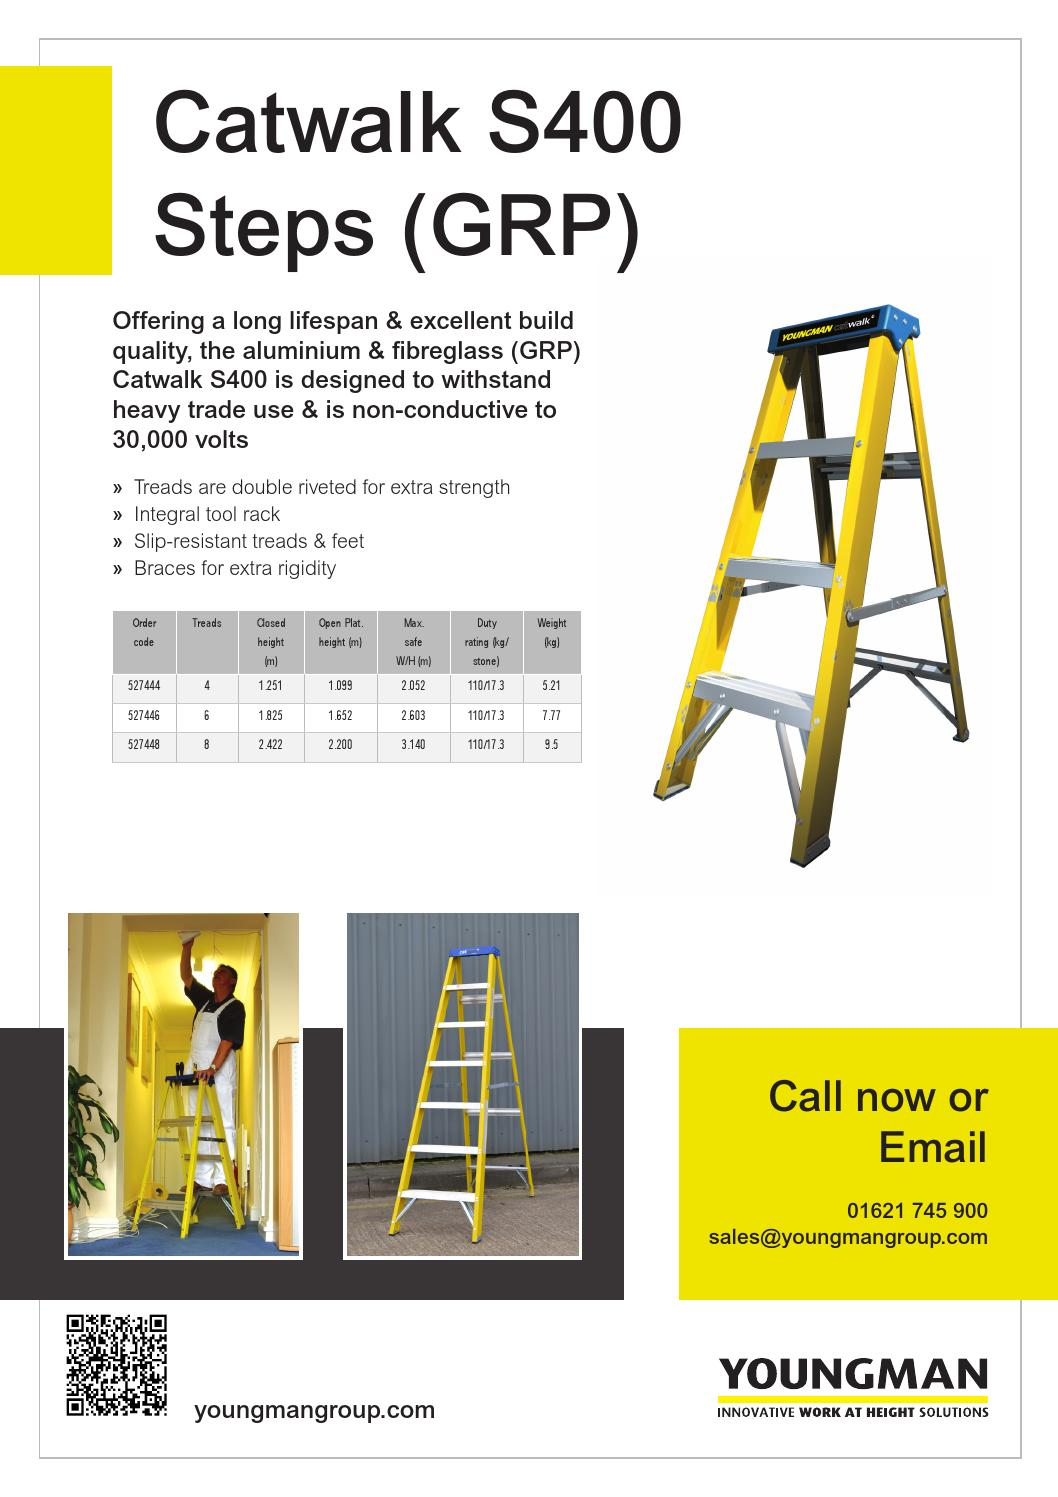 Youngman Group Catwalk Step Ladders by Simply Marcomms - issuu